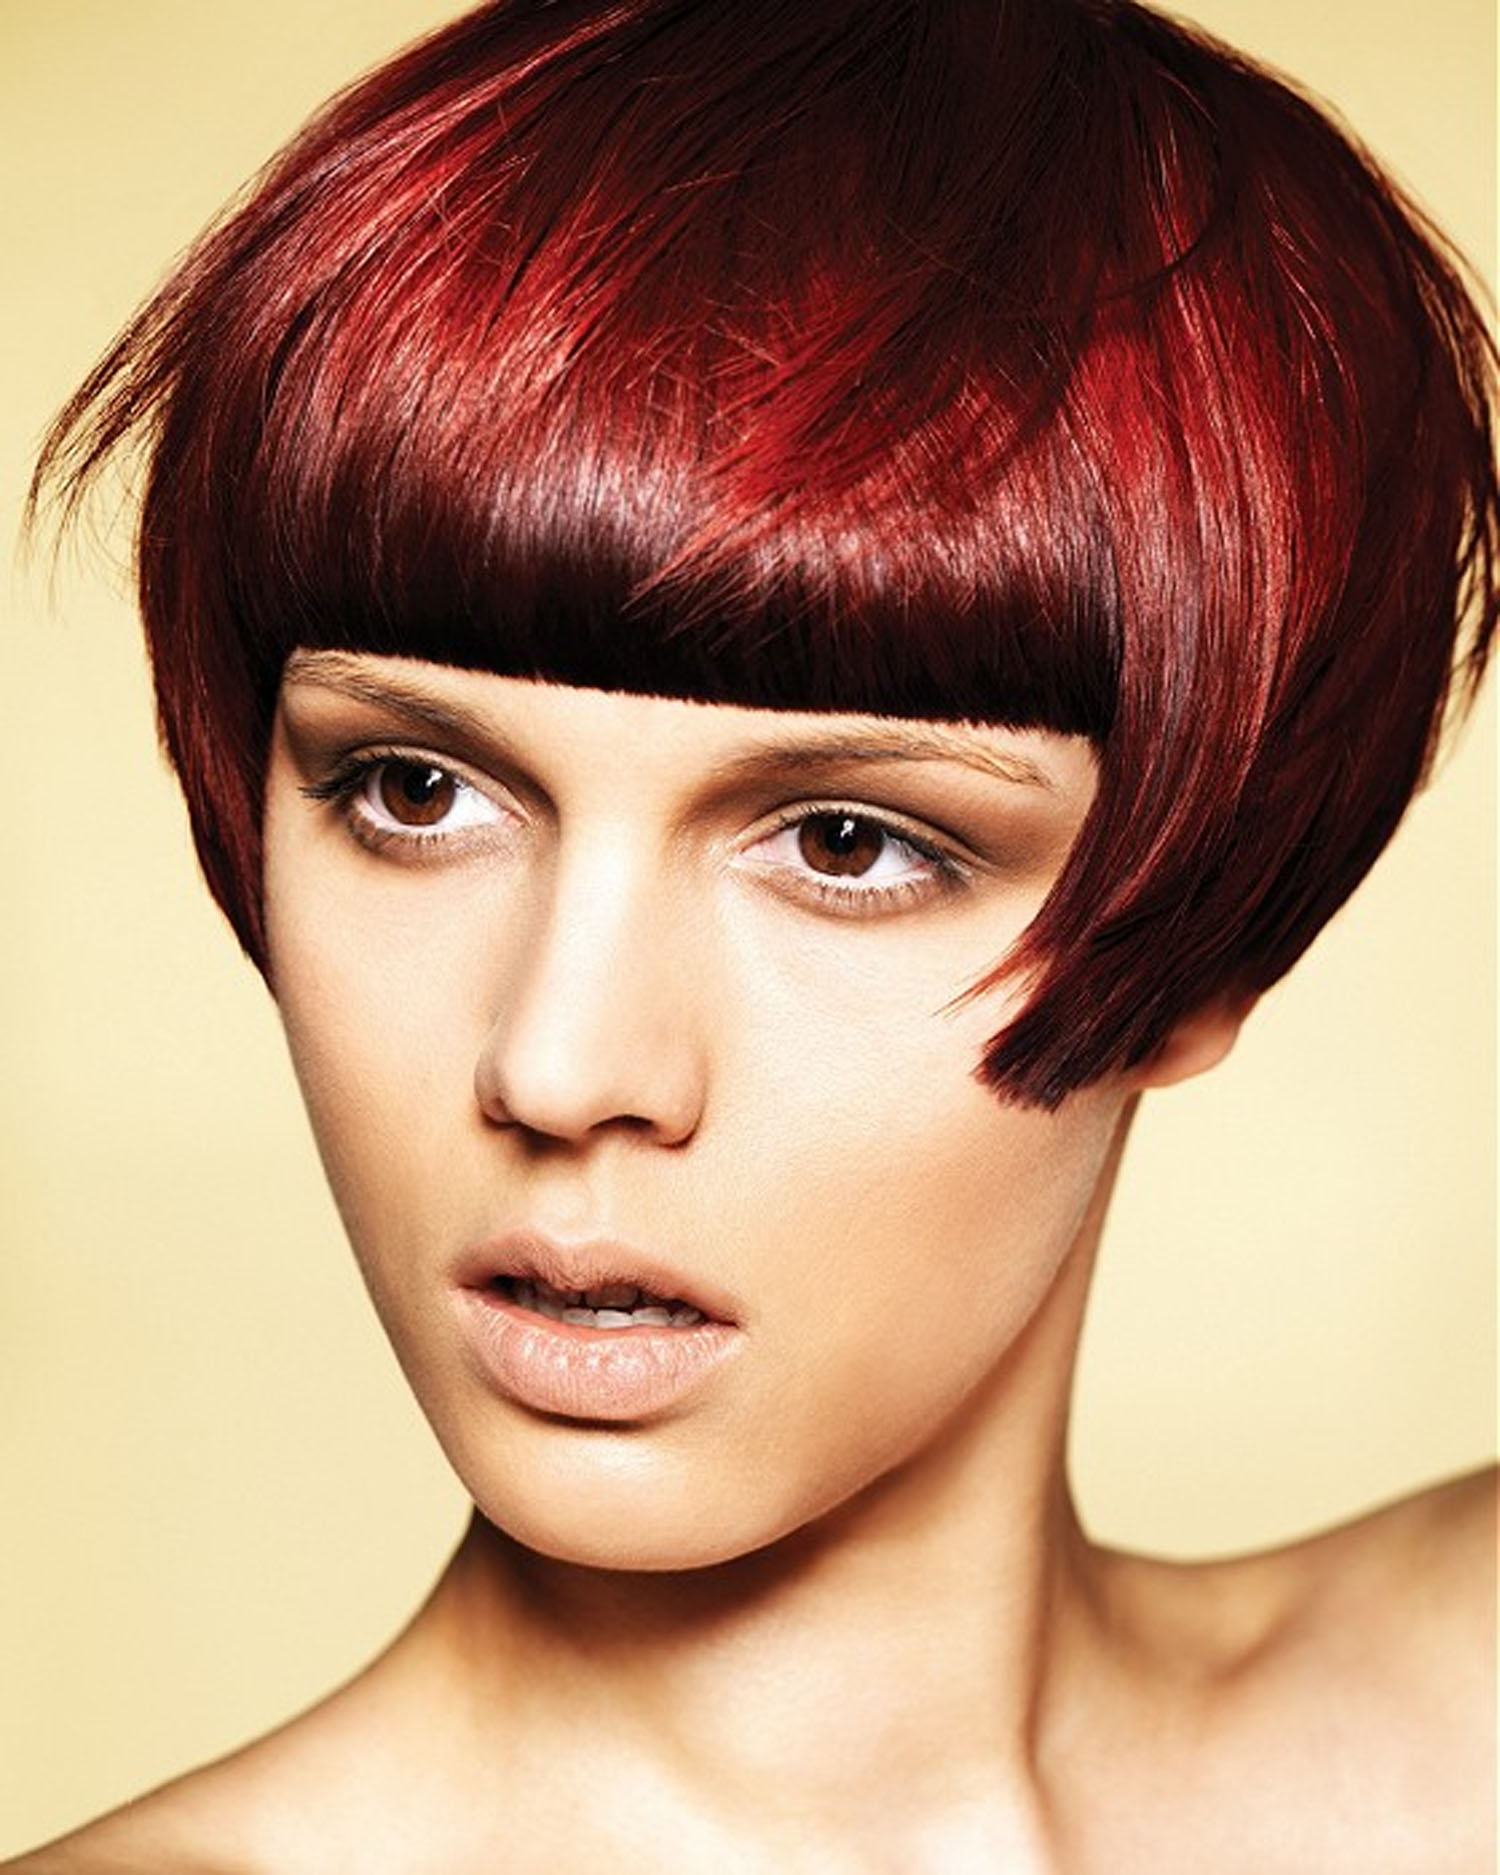 Bob with Fringe as Red Hair Color Ideas for Women Hairstyle